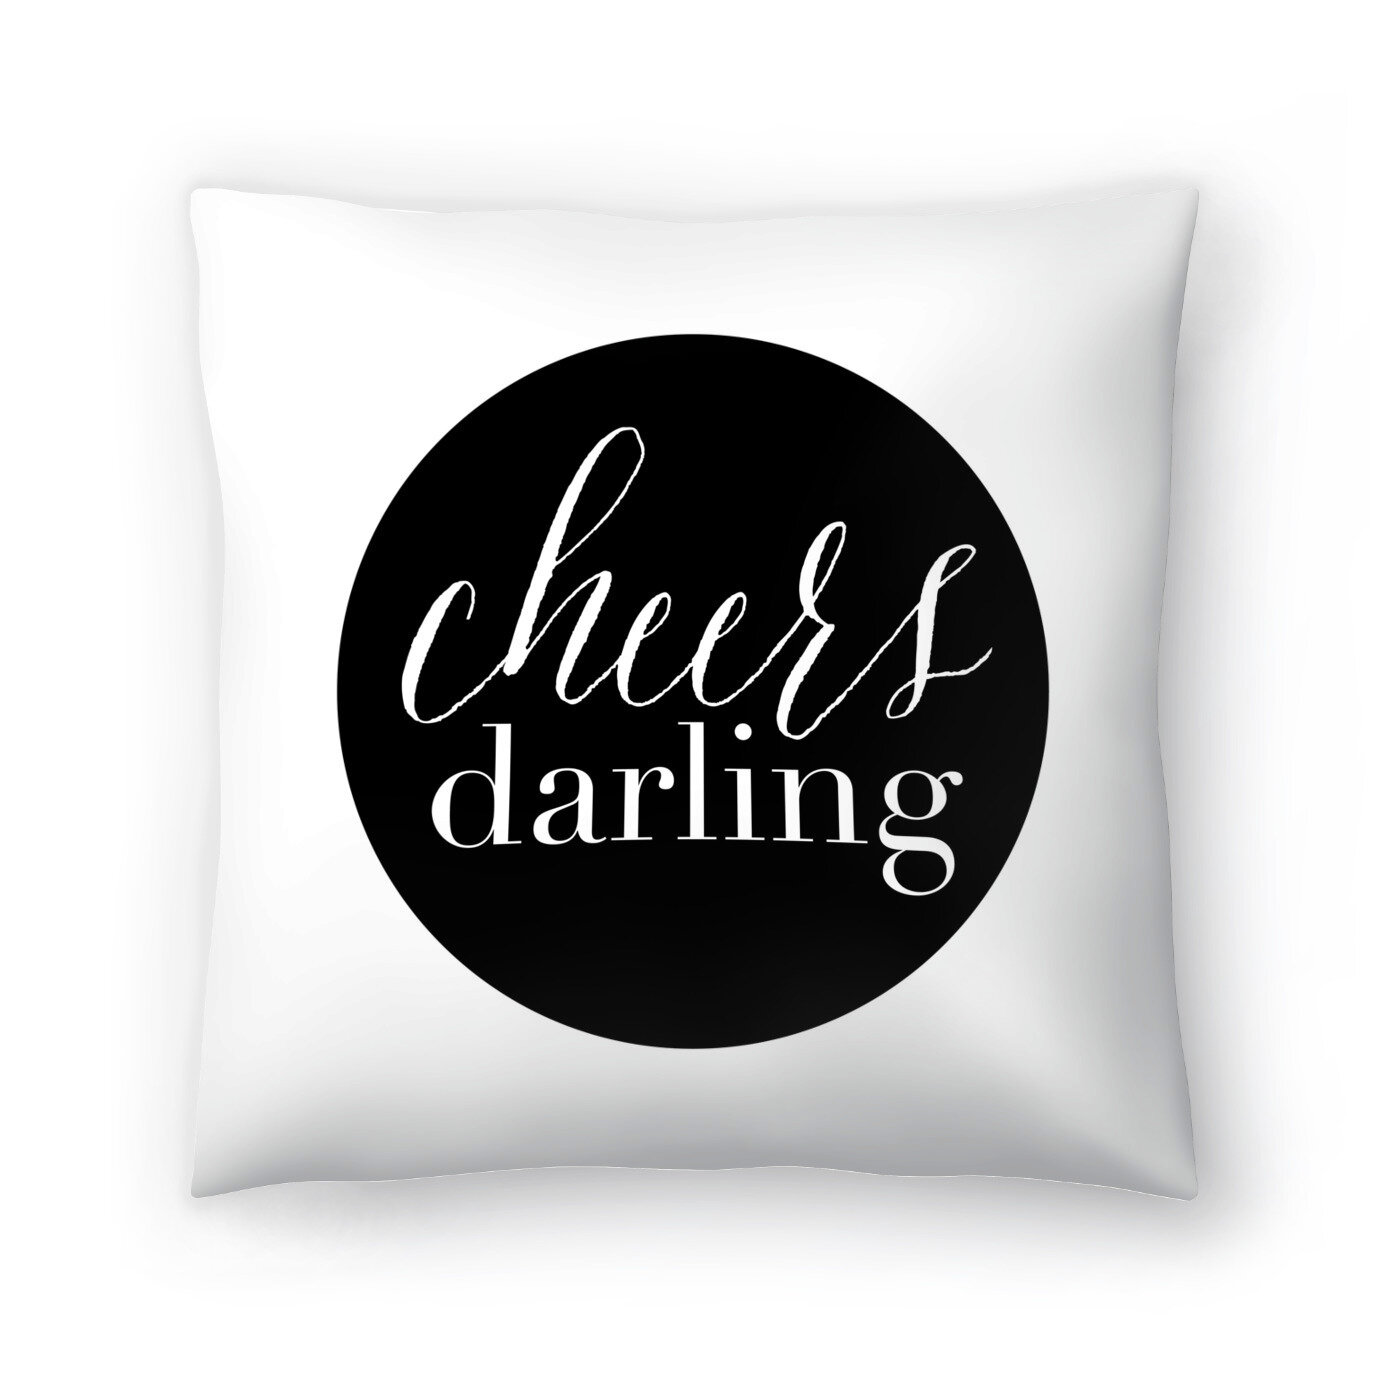 Cheers Darling Black Throw Pillow